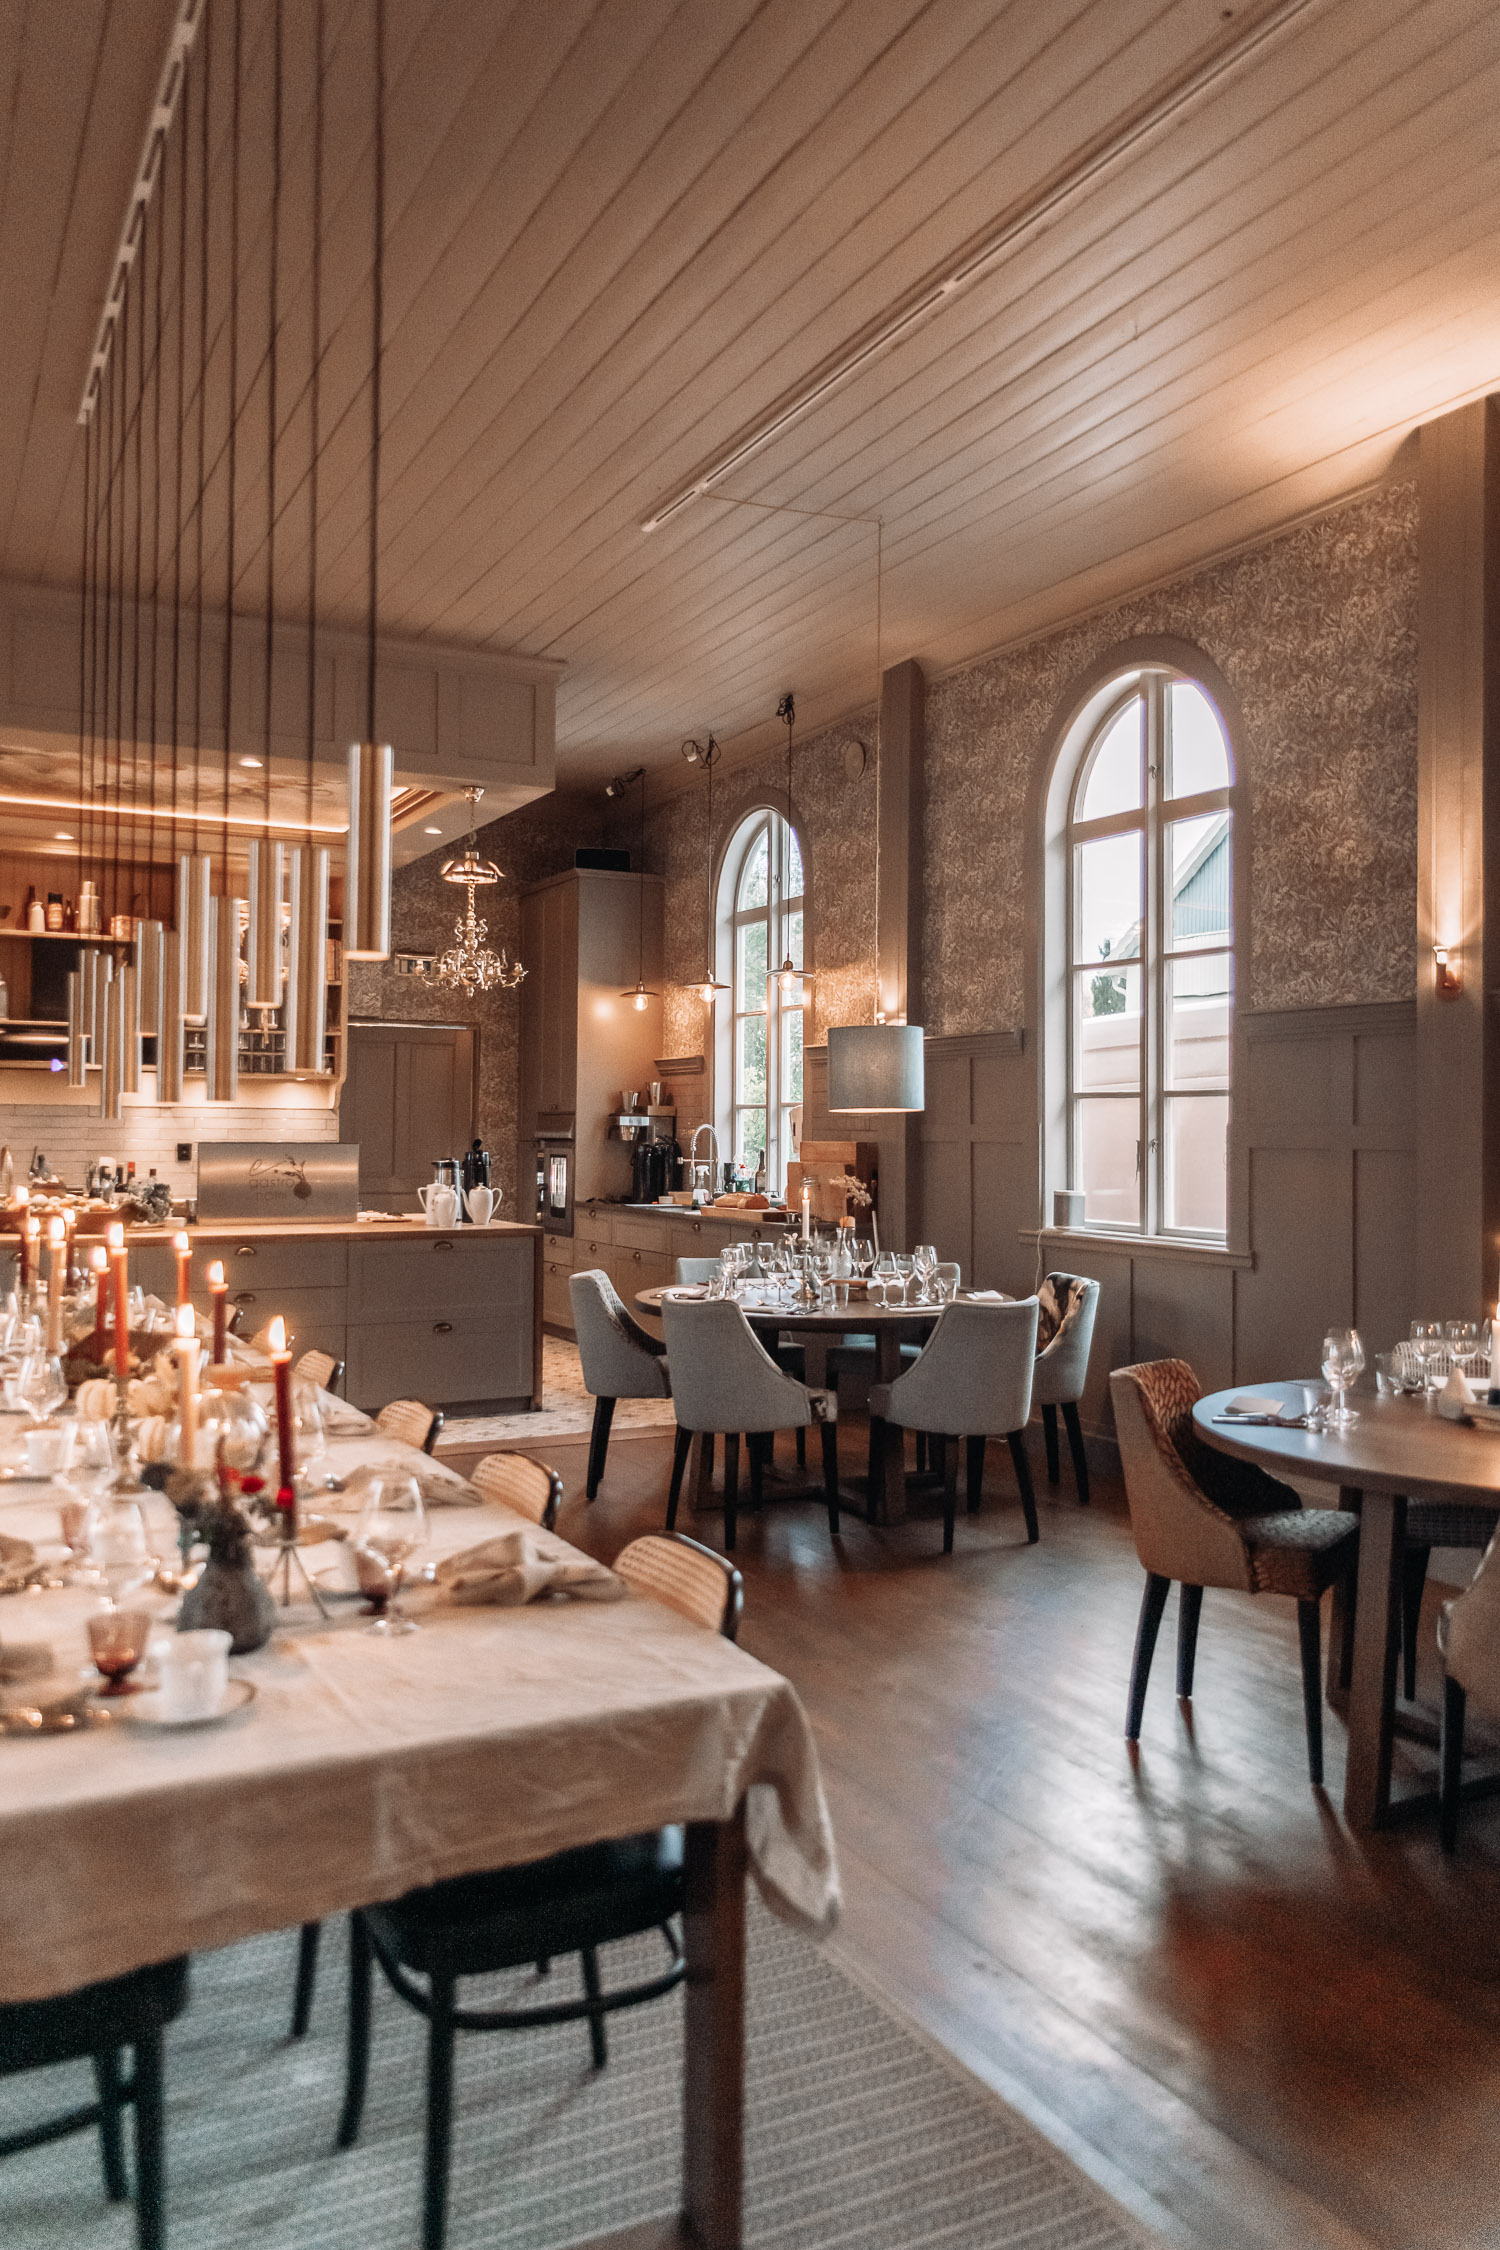 Elegant interior in Egastronomi – food studio and restaurant in Åbytorp, Sweden